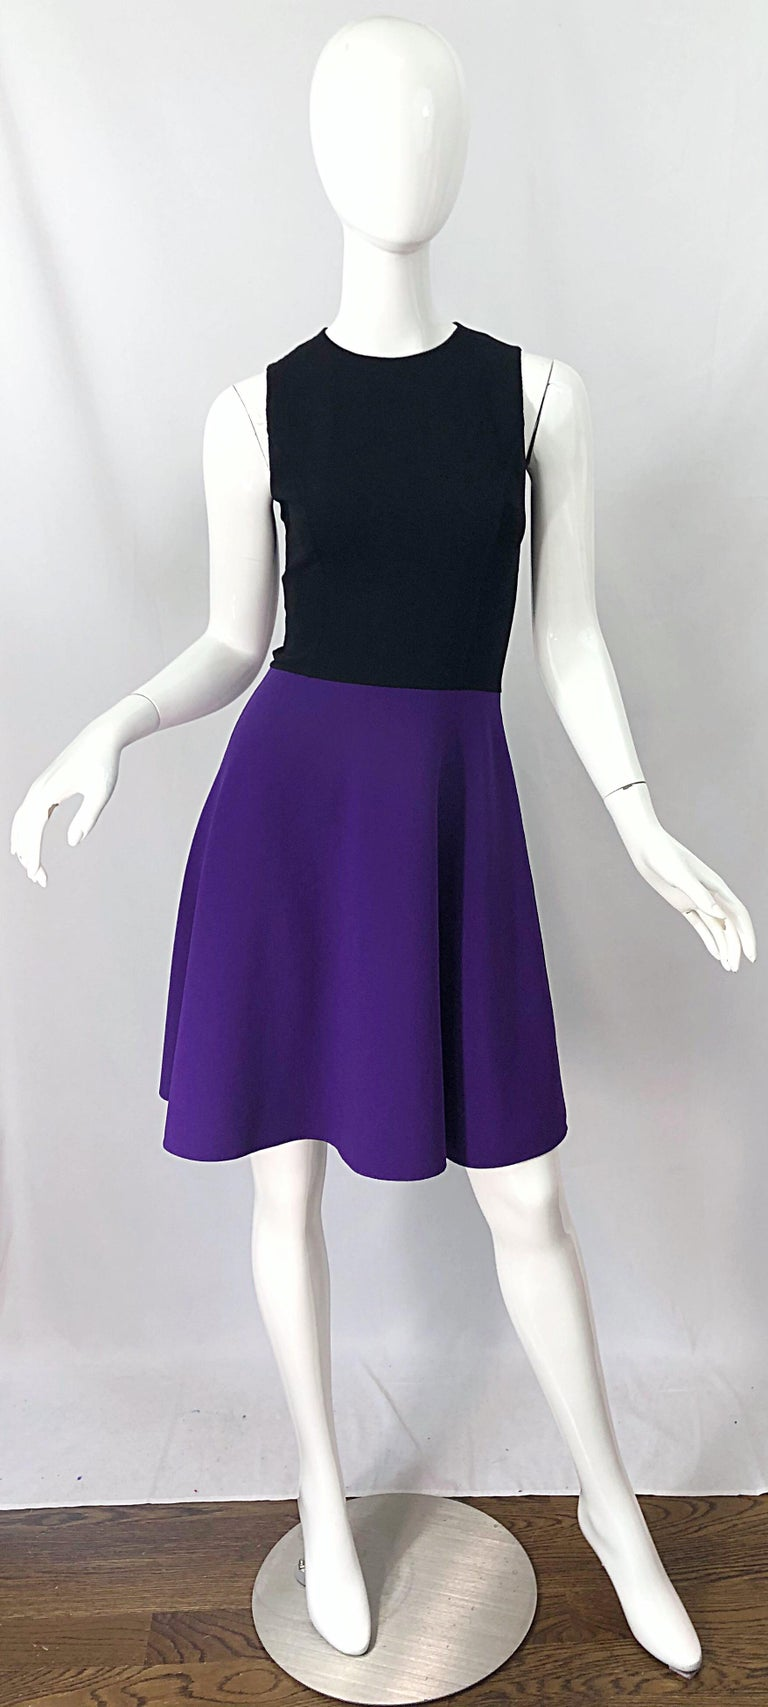 Wonderful mid 2000s $1,850 MICHAEL KORS COLLECTION black and purple color block sleeveless A -Line / Skater dress! Features a tailored bodice with a full skirt. Hidden zipper up the back with hook-and-eye closure. Can easily work for day or evening